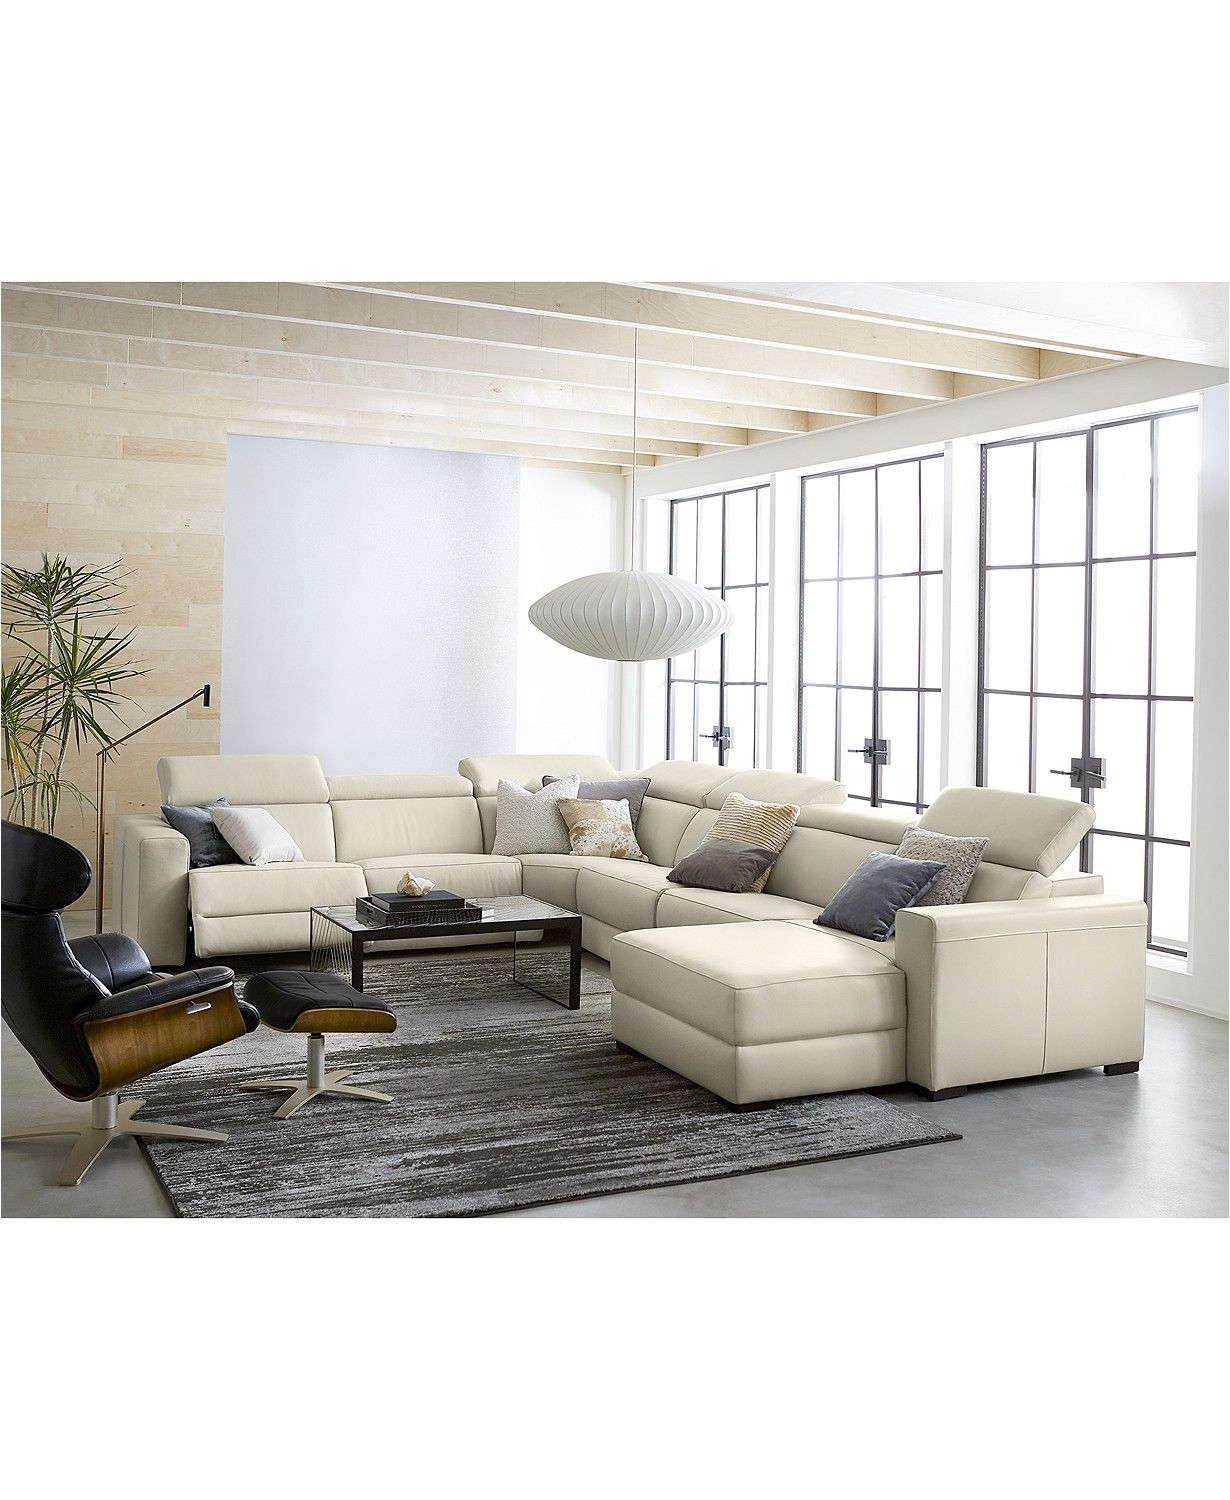 Fabulous Nevio 6 Pc Leather L Shaped Sectional Sofa With 3 Power Pabps2019 Chair Design Images Pabps2019Com